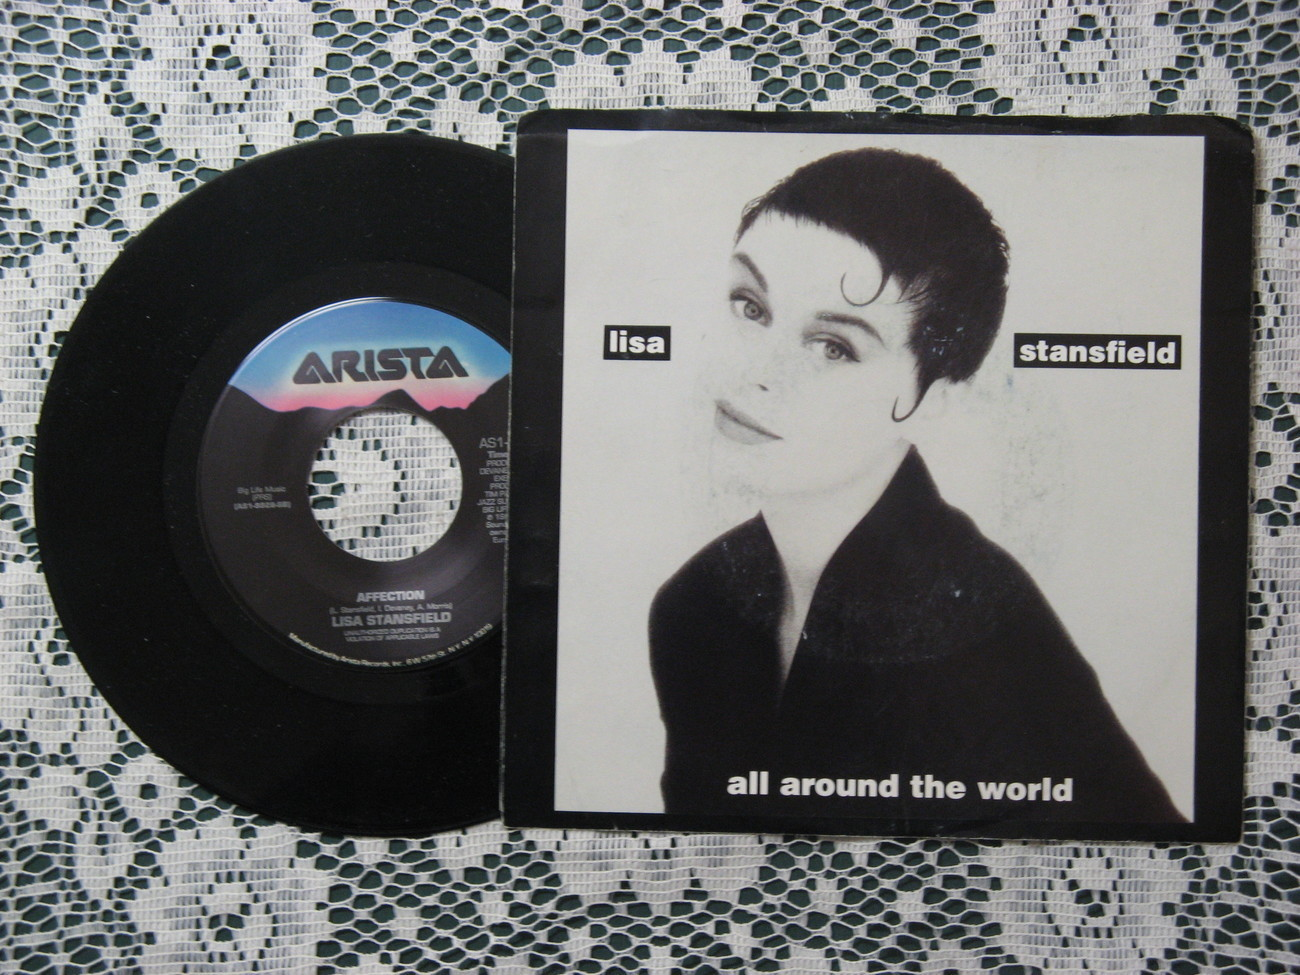 Lisa Stansfield ALL AROUND THE WORLD 45RPM Arista